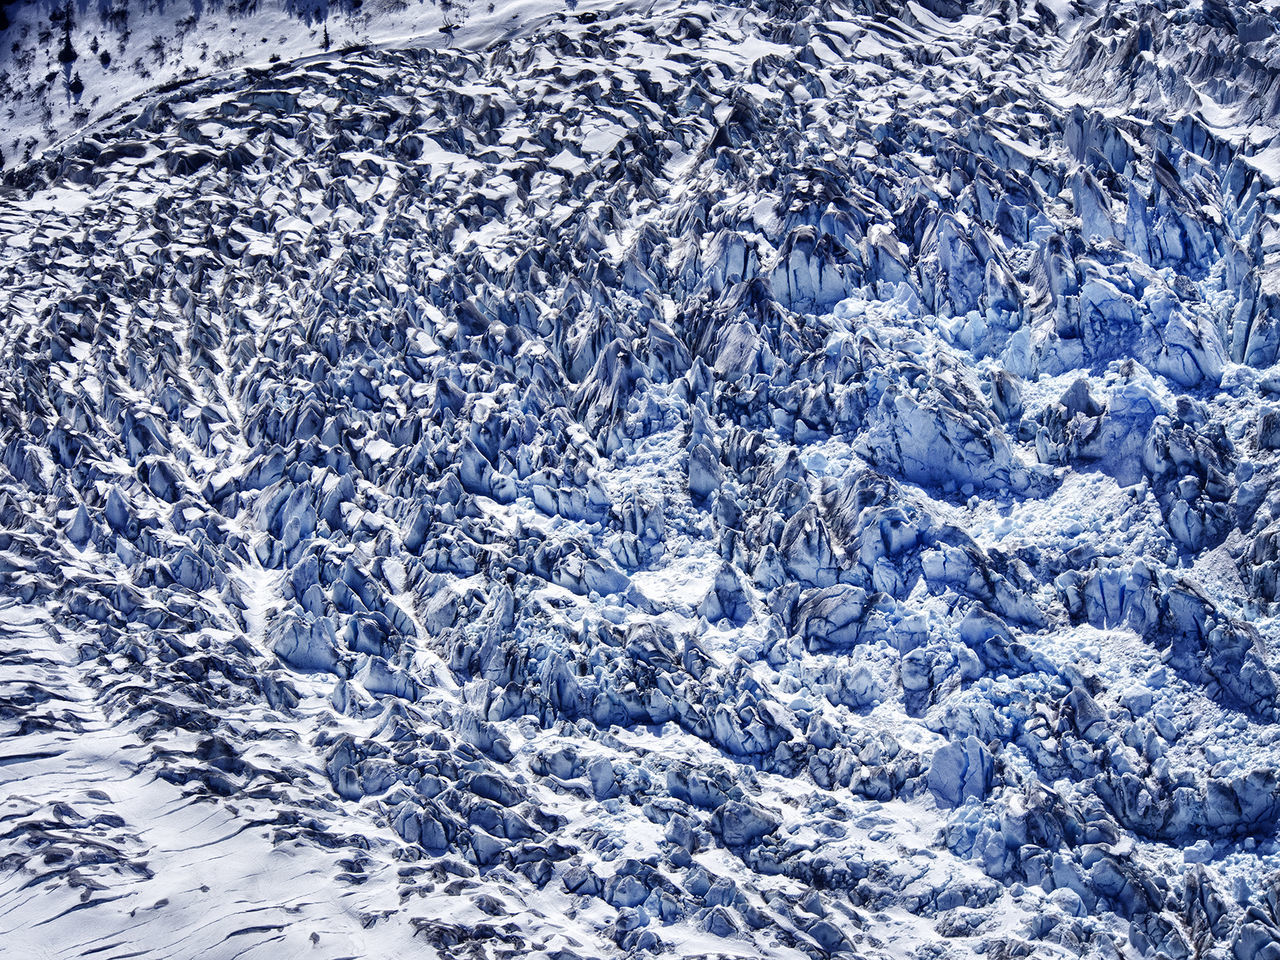 full frame, backgrounds, cold temperature, nature, no people, water, winter, purity, ice, snow, blue, pattern, beauty in nature, environment, day, outdoors, textured, frozen